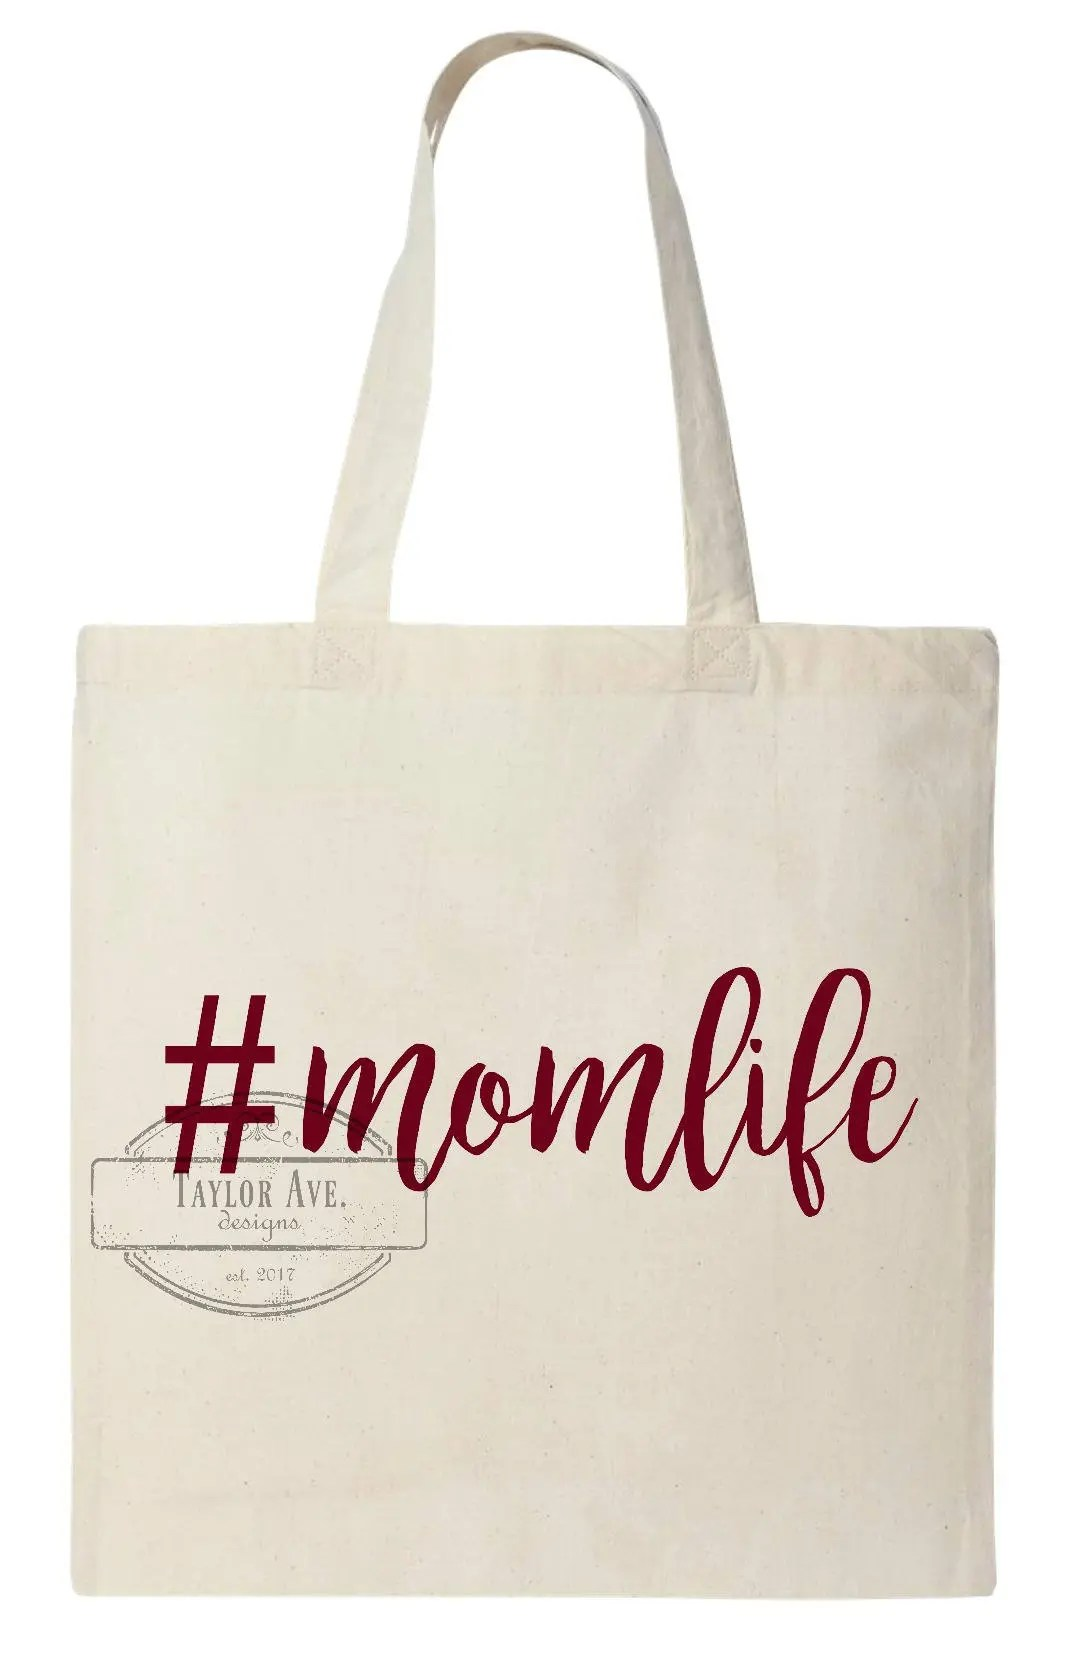 Tuinieren Hashtags Tote Bag Momlife Funny Tote Bag Trendy Hashtags Gift Giving Mother S Day Baby Shower Holidays Custom Orders Matching Set